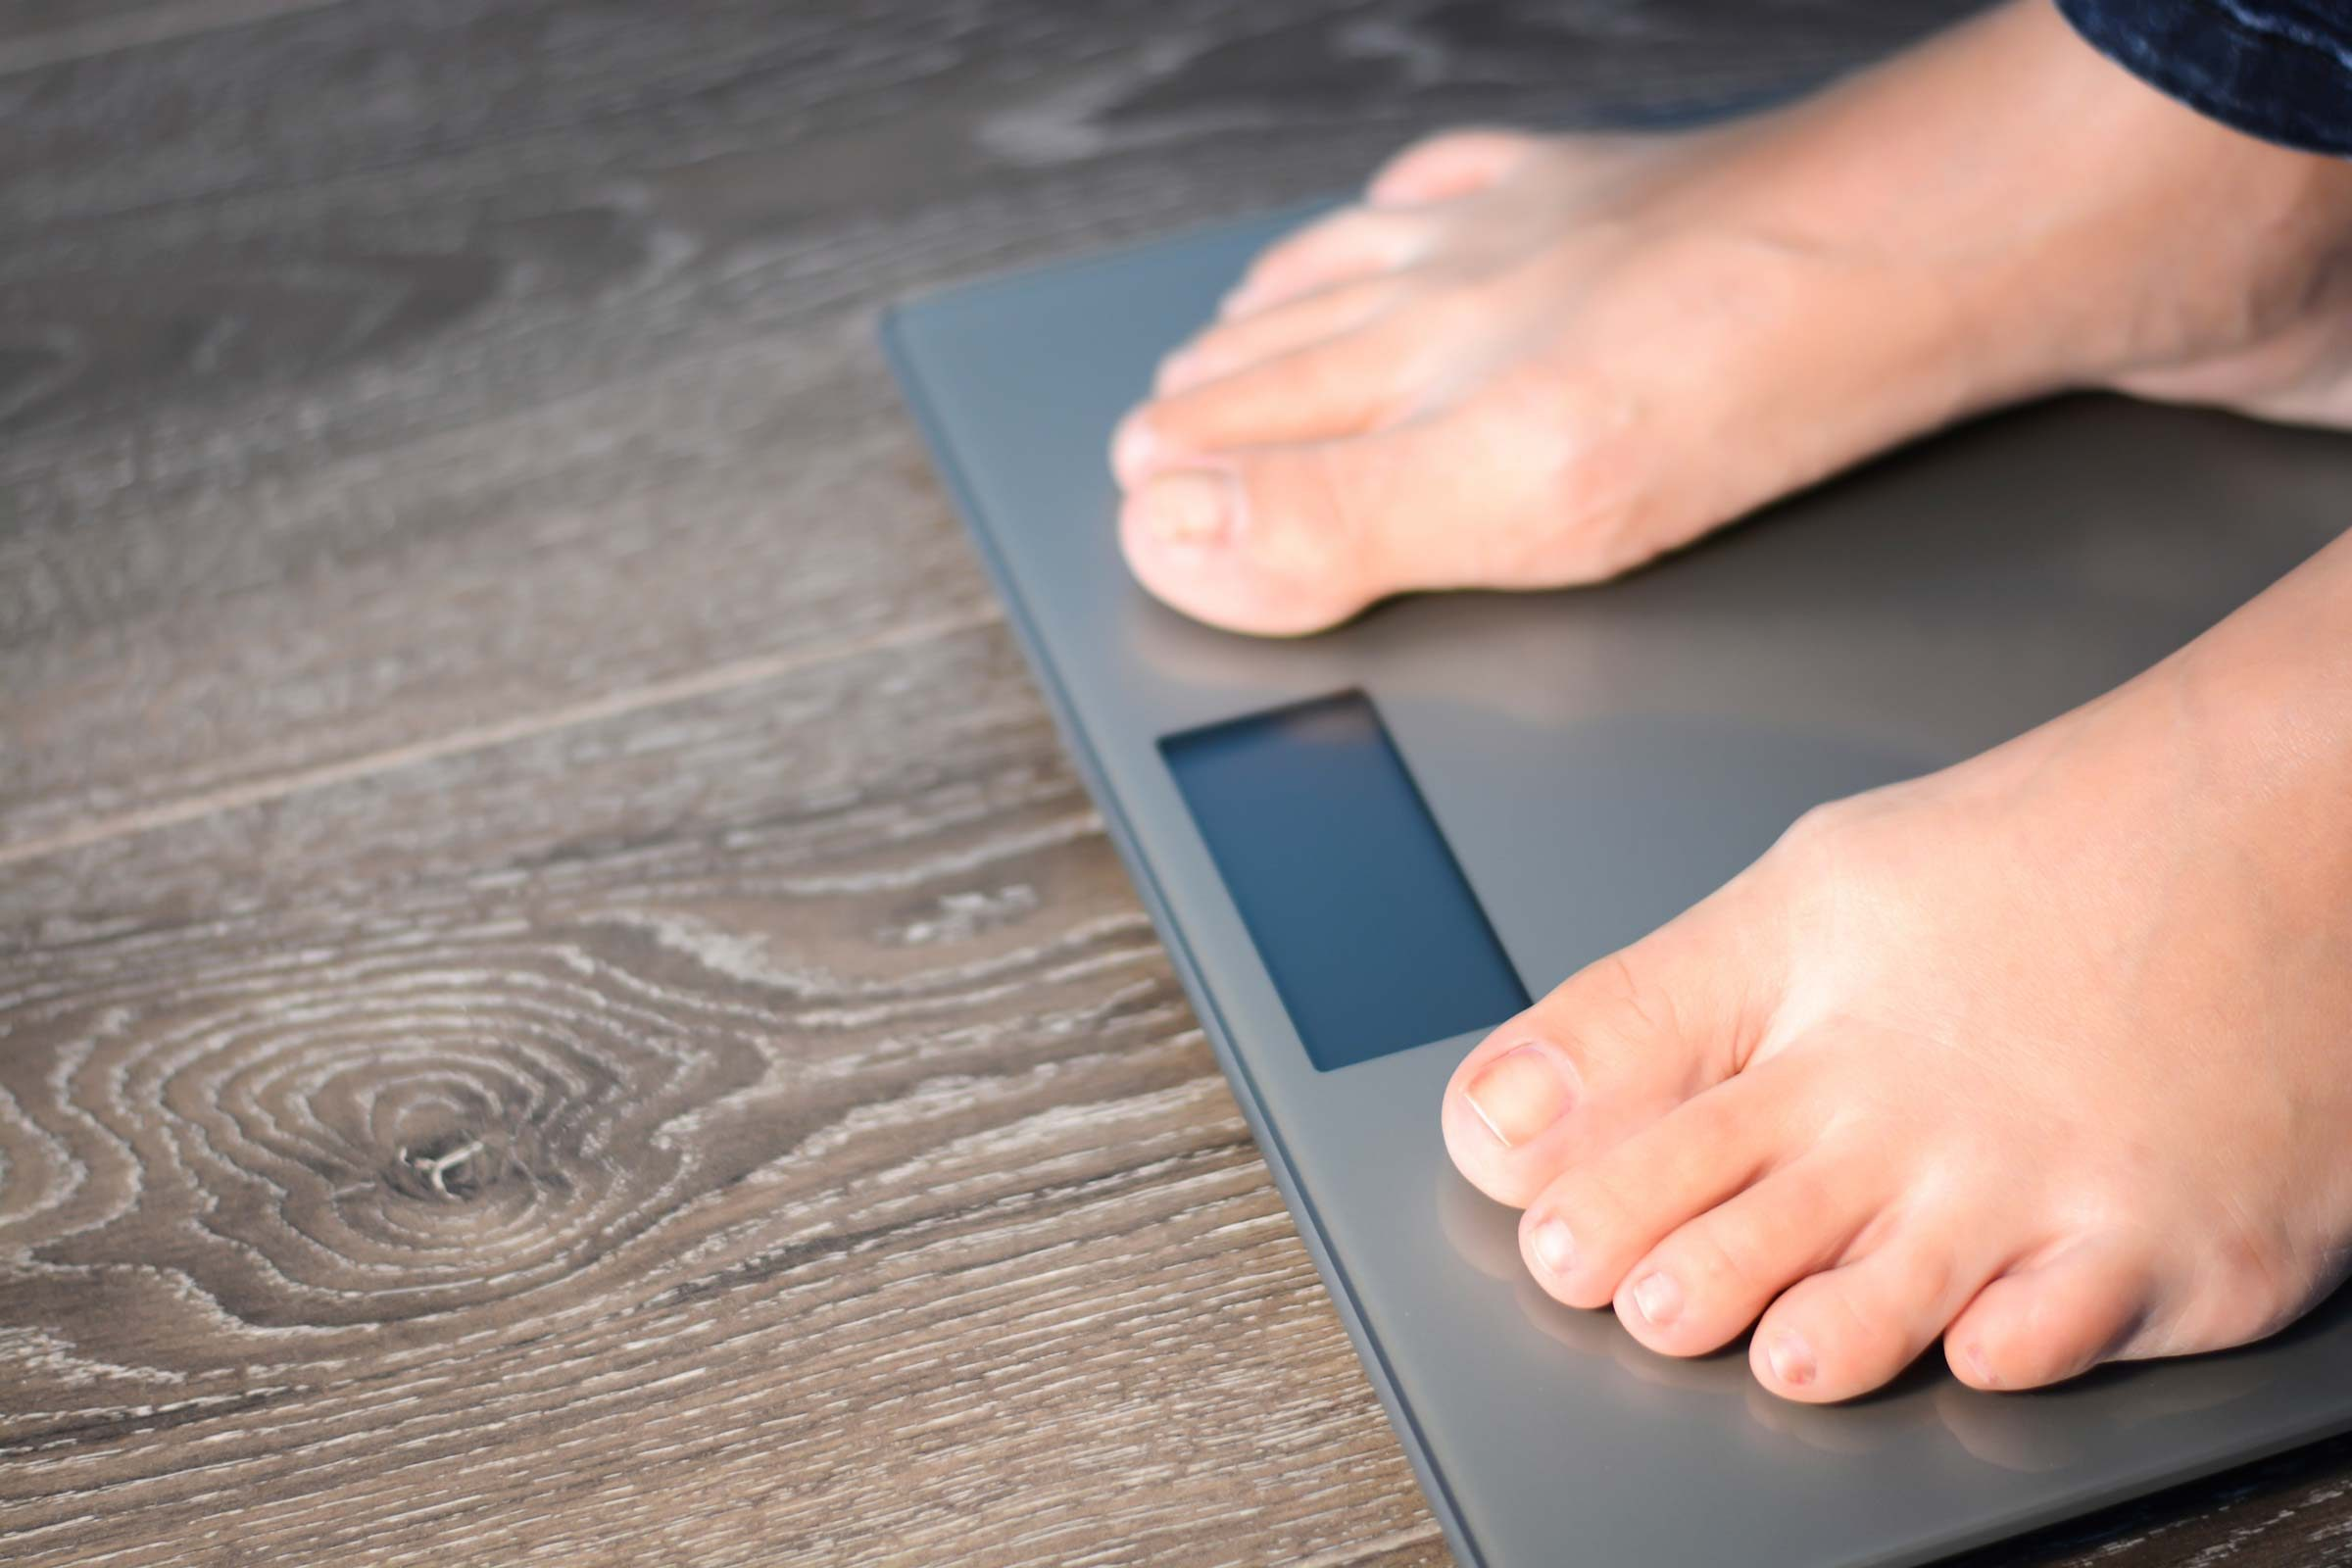 All New Tools * Weight Loss With Hypnosis: Earn BB185 Per Sale